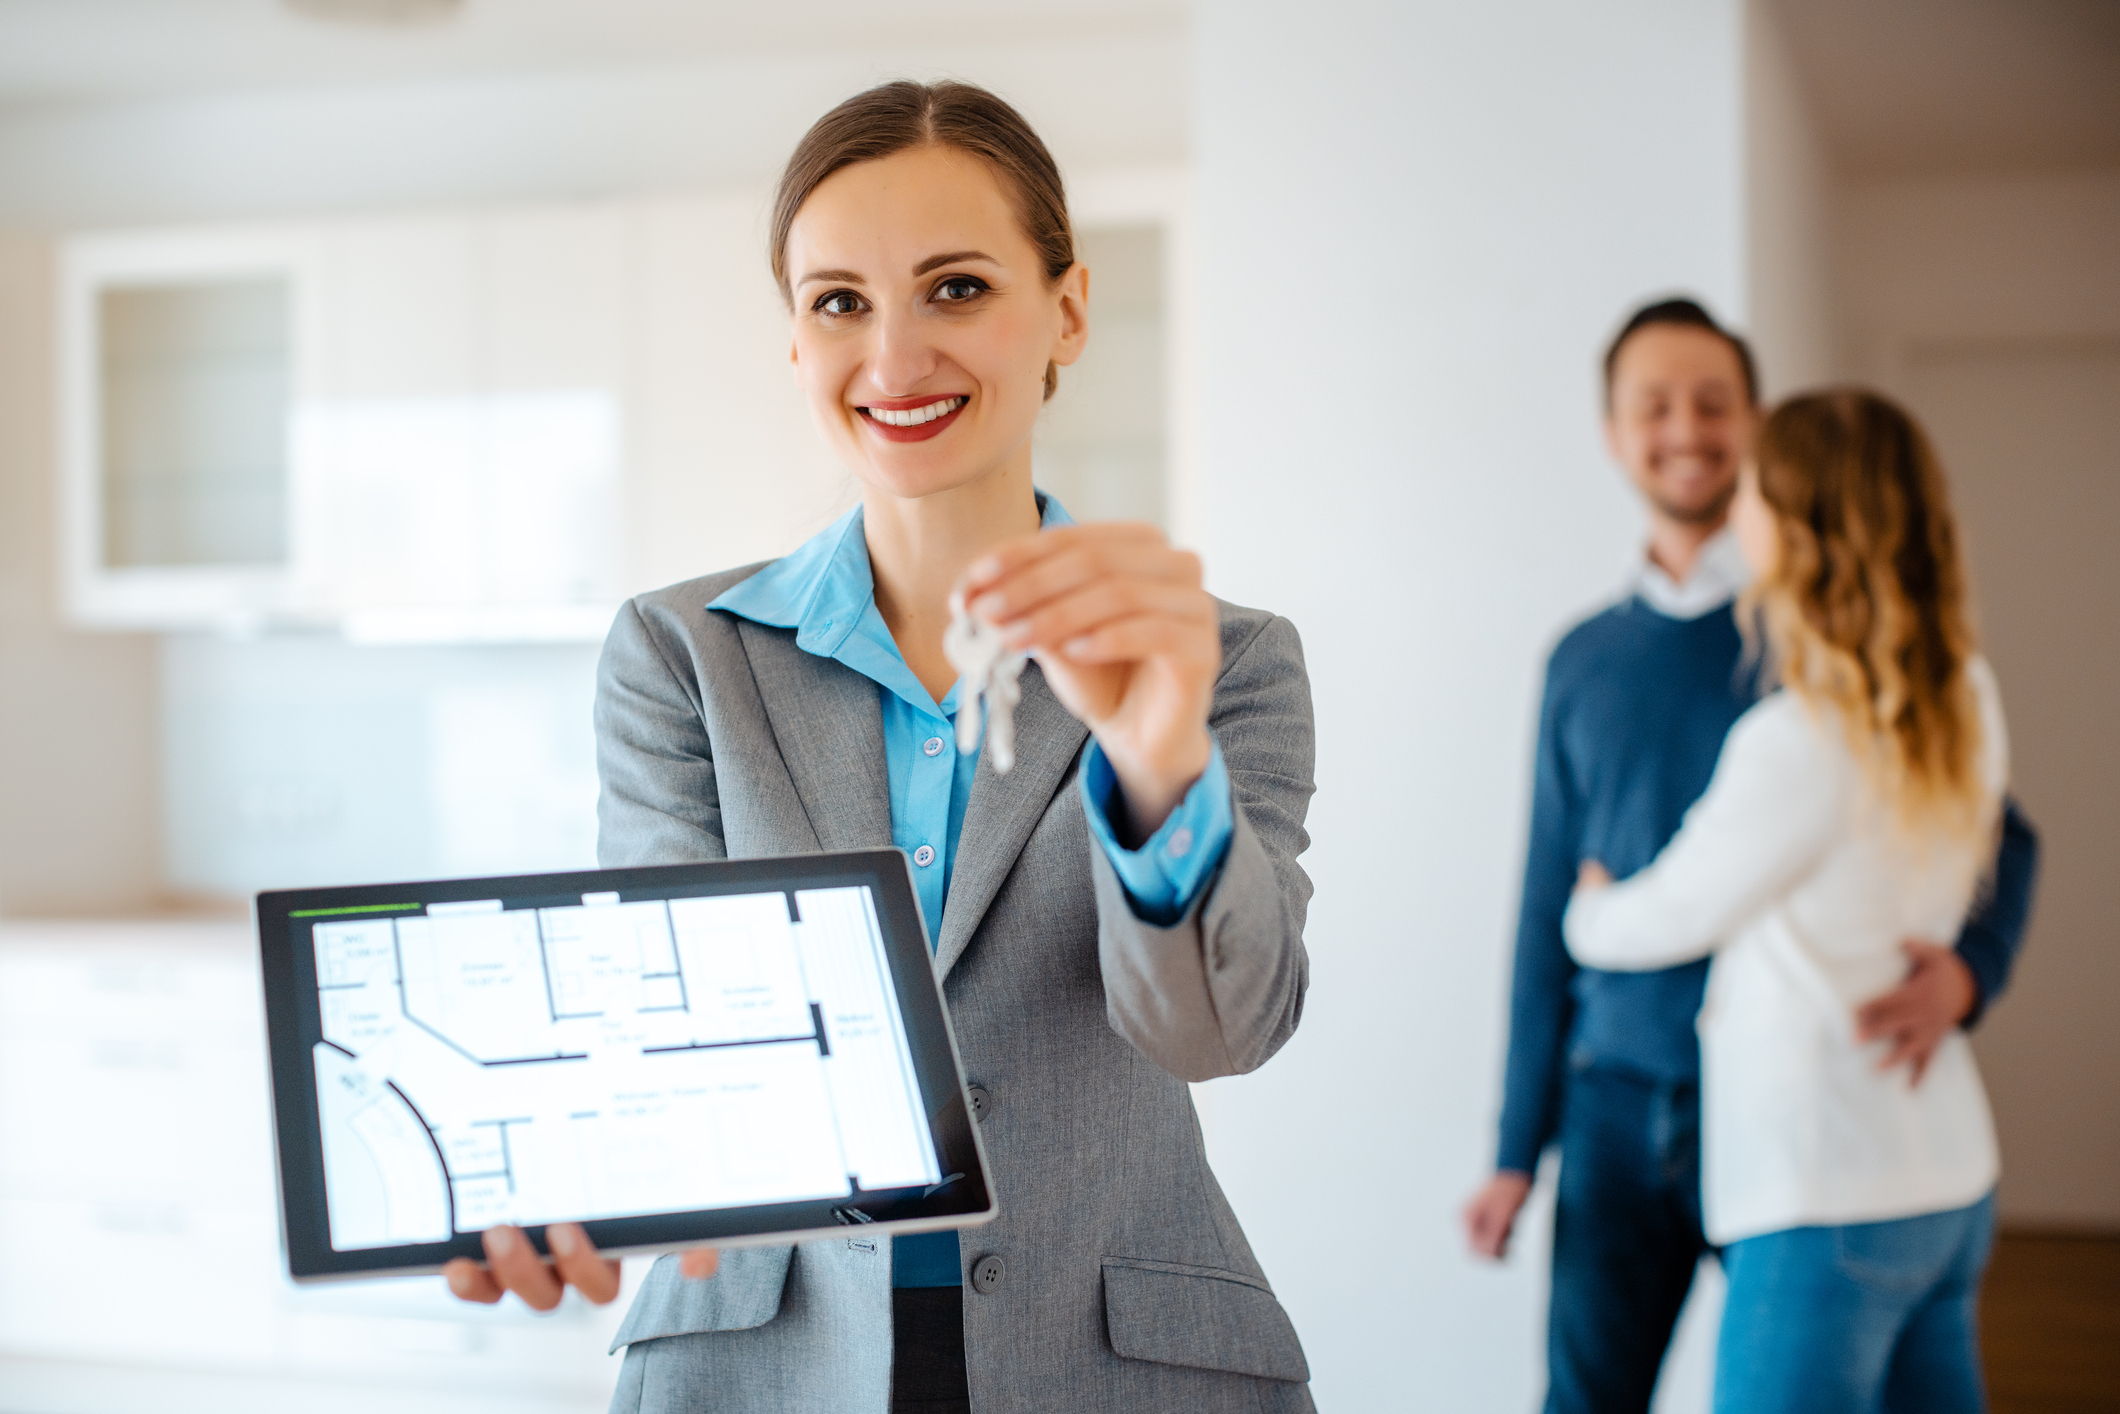 A female landlord showing the screen of her tablet and using a property management software like Buildium while showing a house.